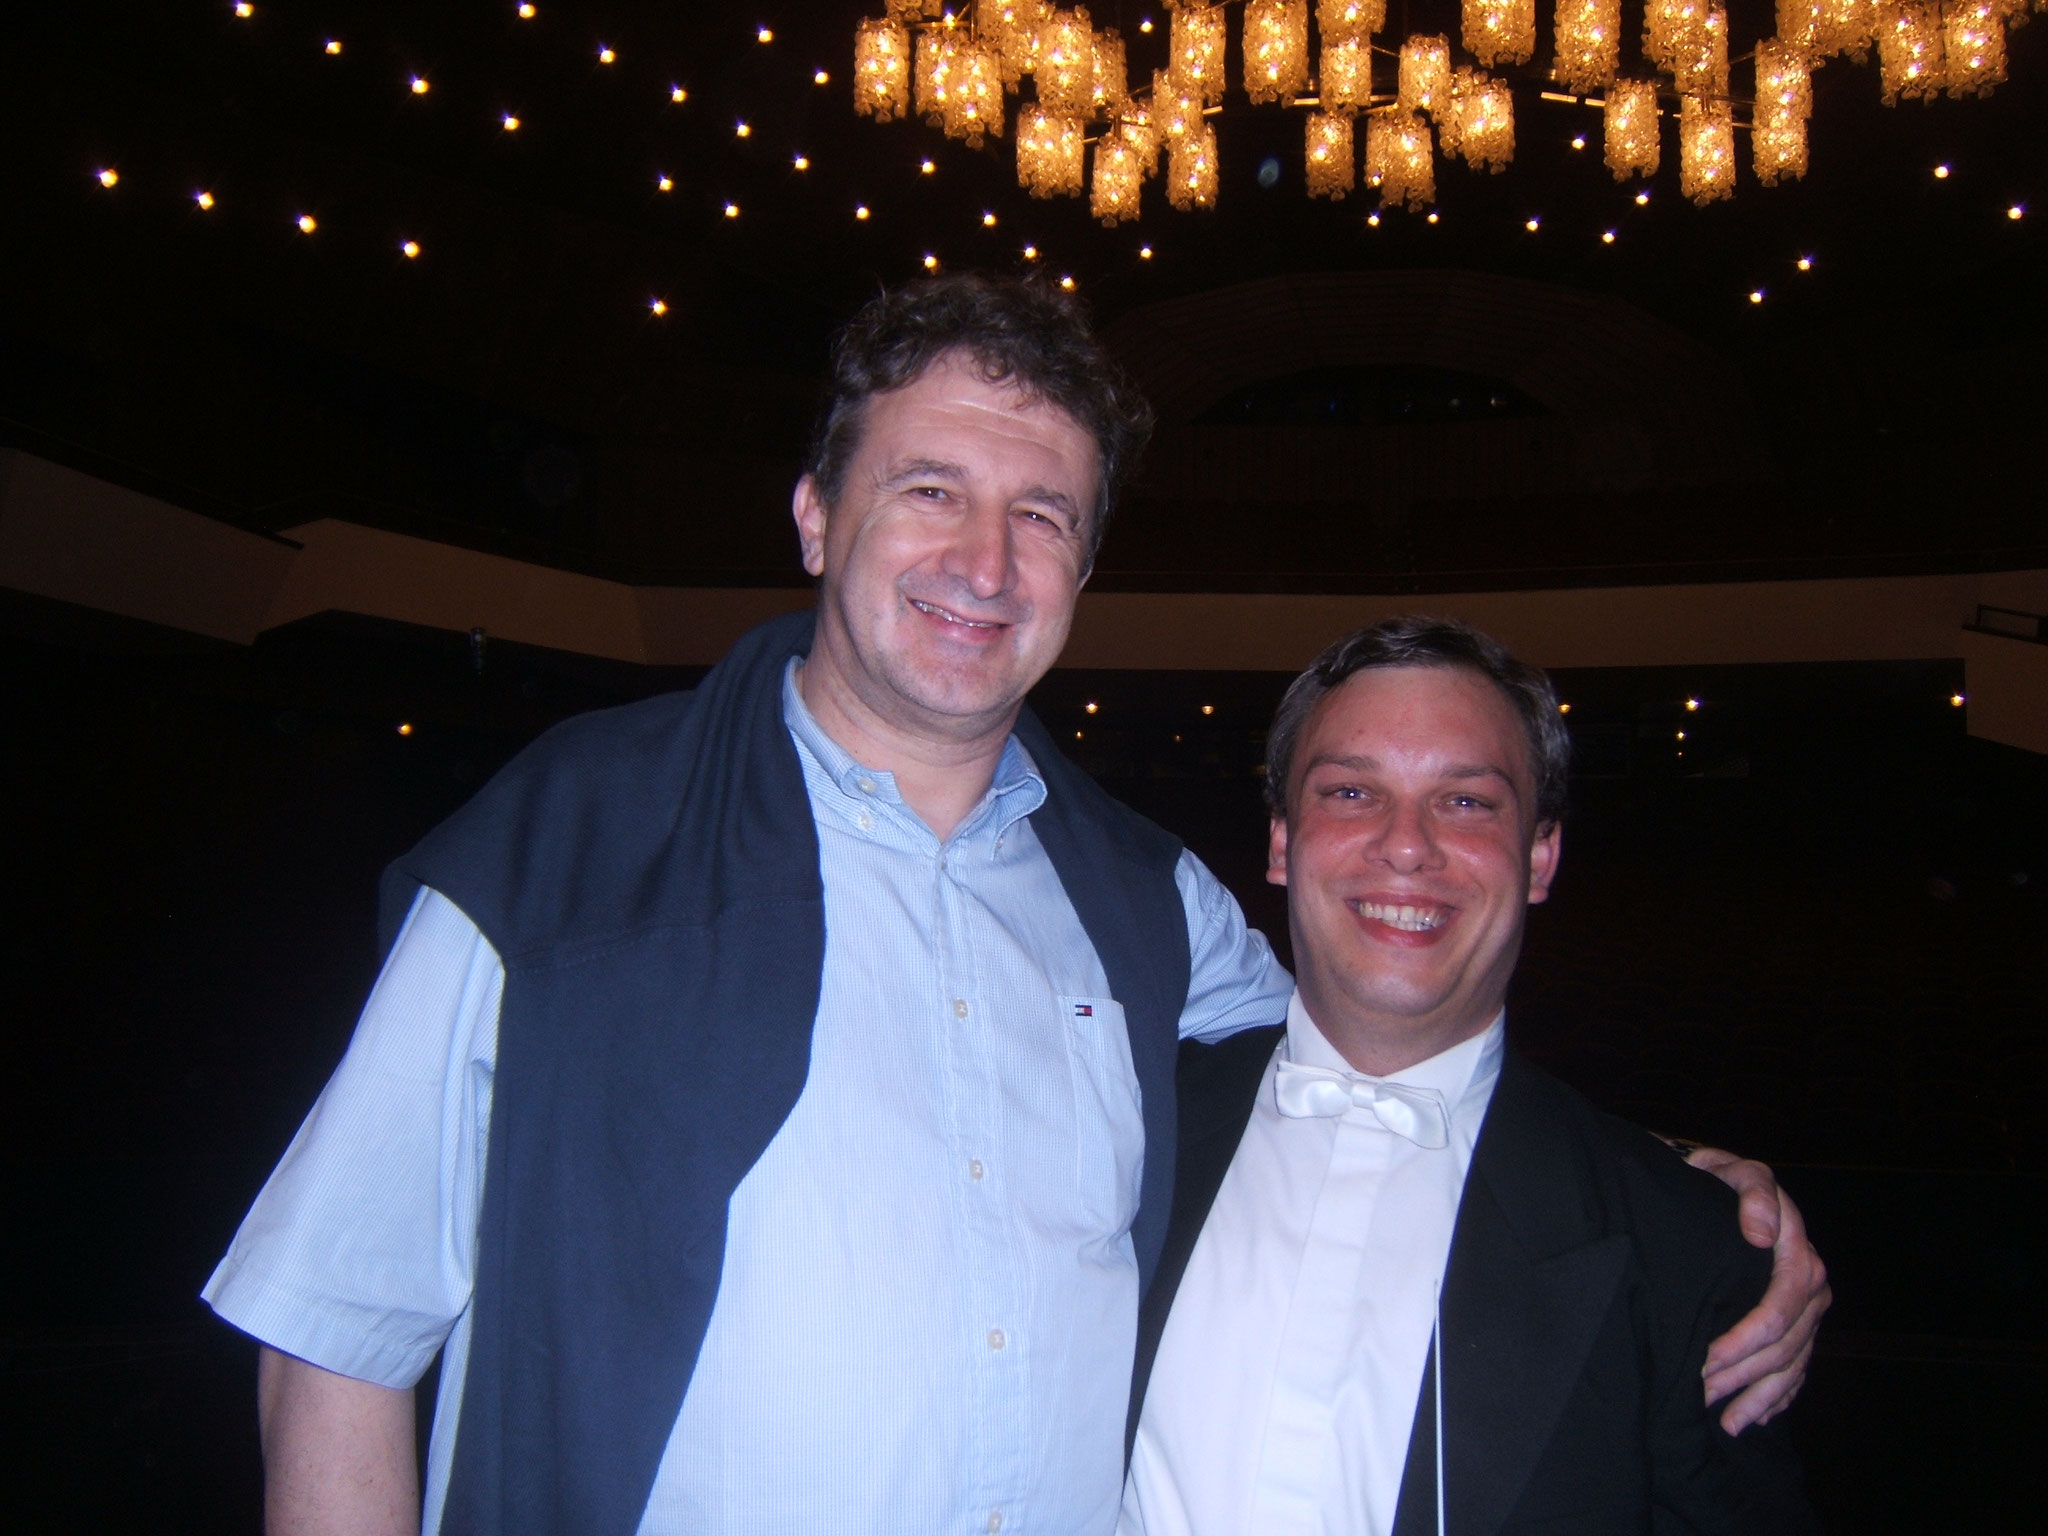 With Maestro Dejan Savic